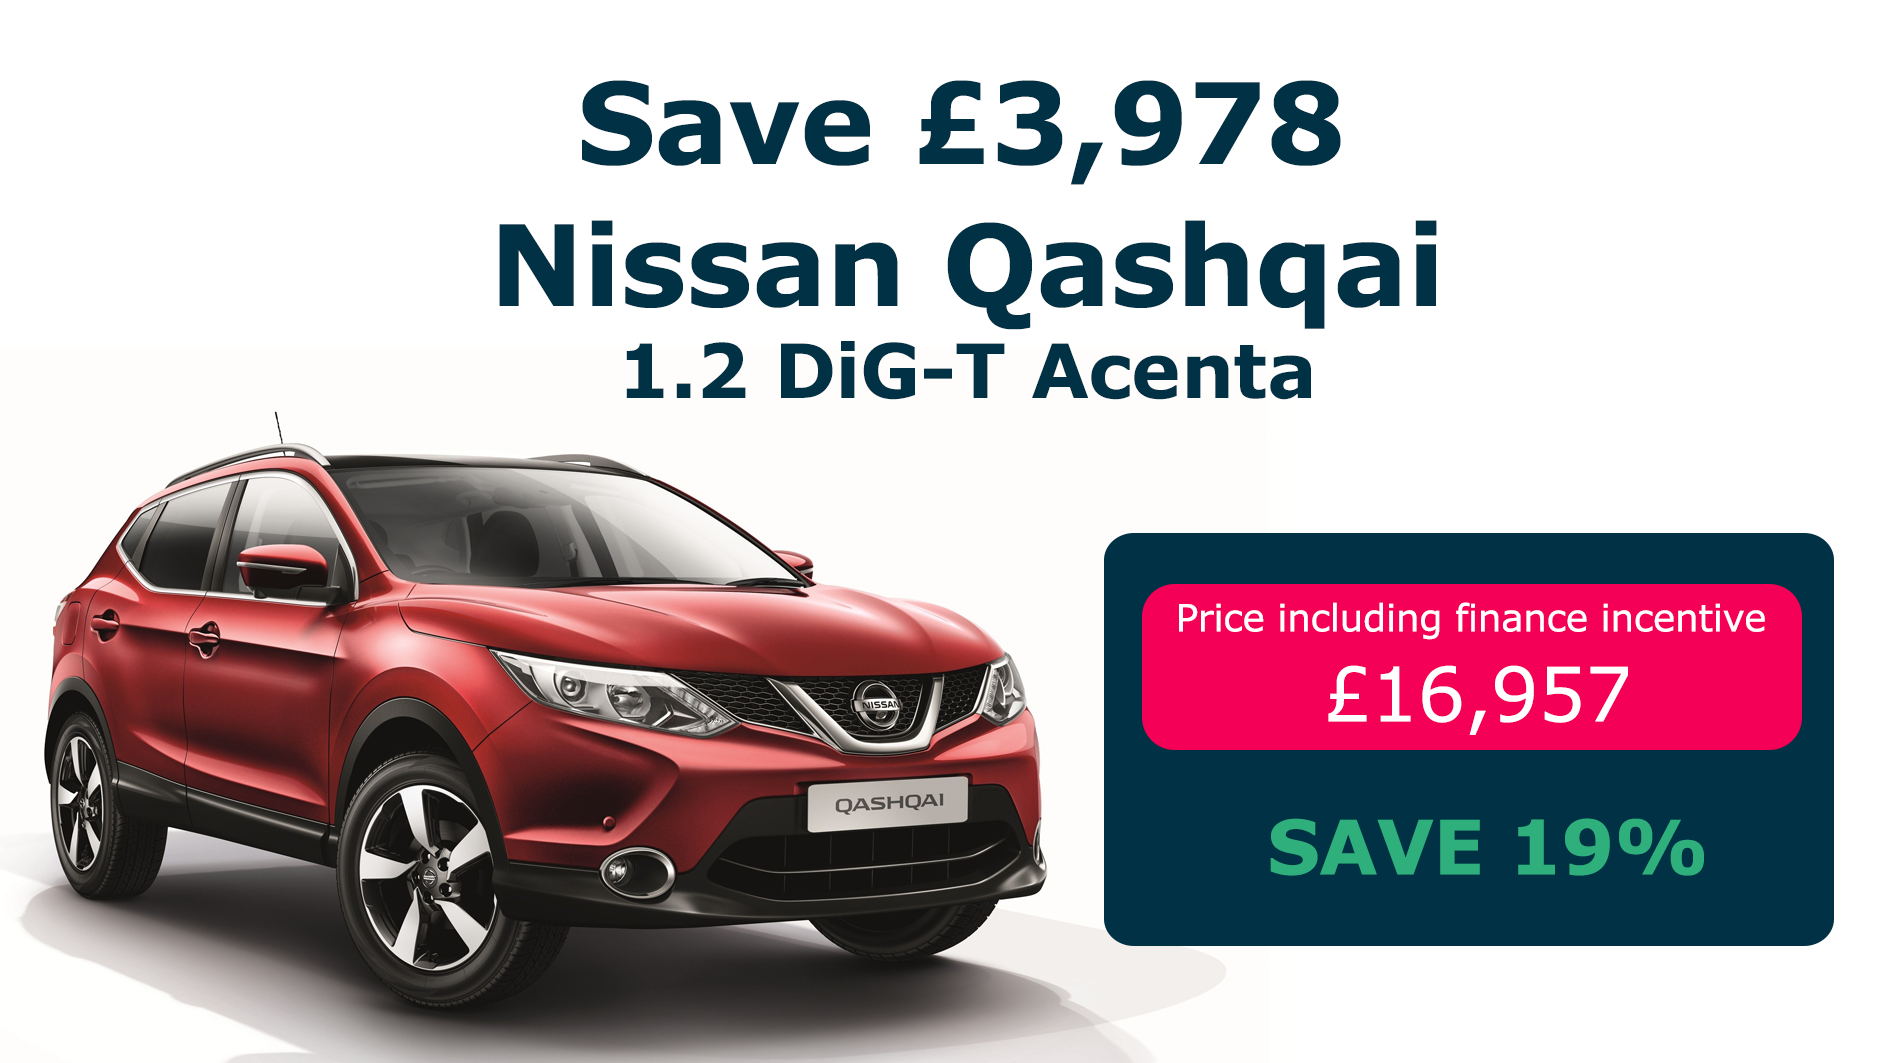 Best new car deals right now uk